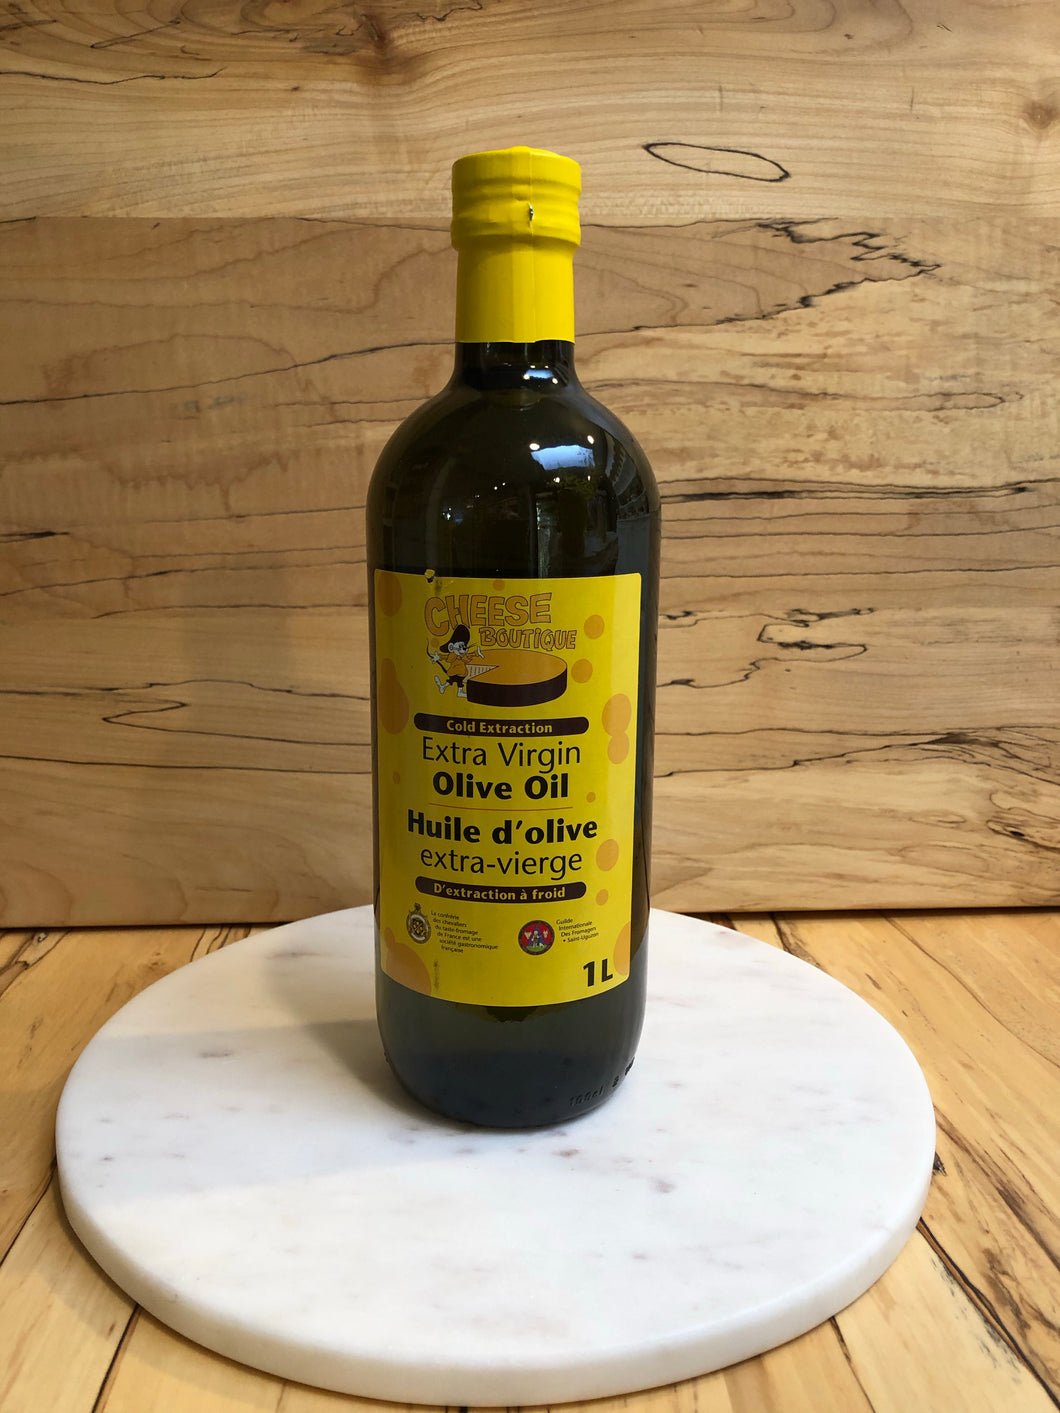 Cheese Boutique Olive Oil -1L